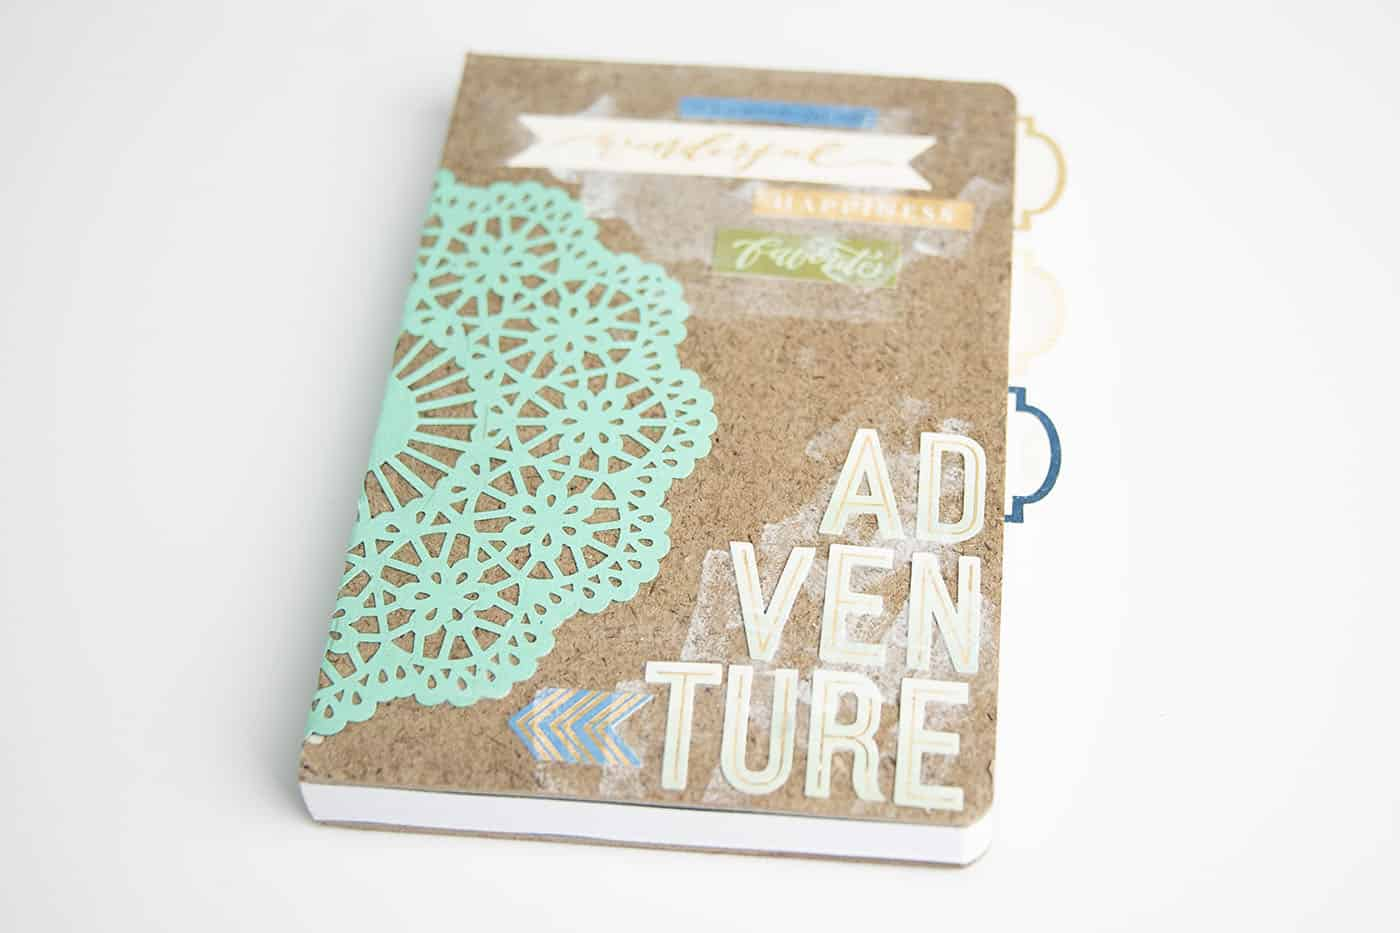 This adventure themed DIY notebook is the perfect gift idea for everyone from hostesses to teachers to kids! So simple to personalize.